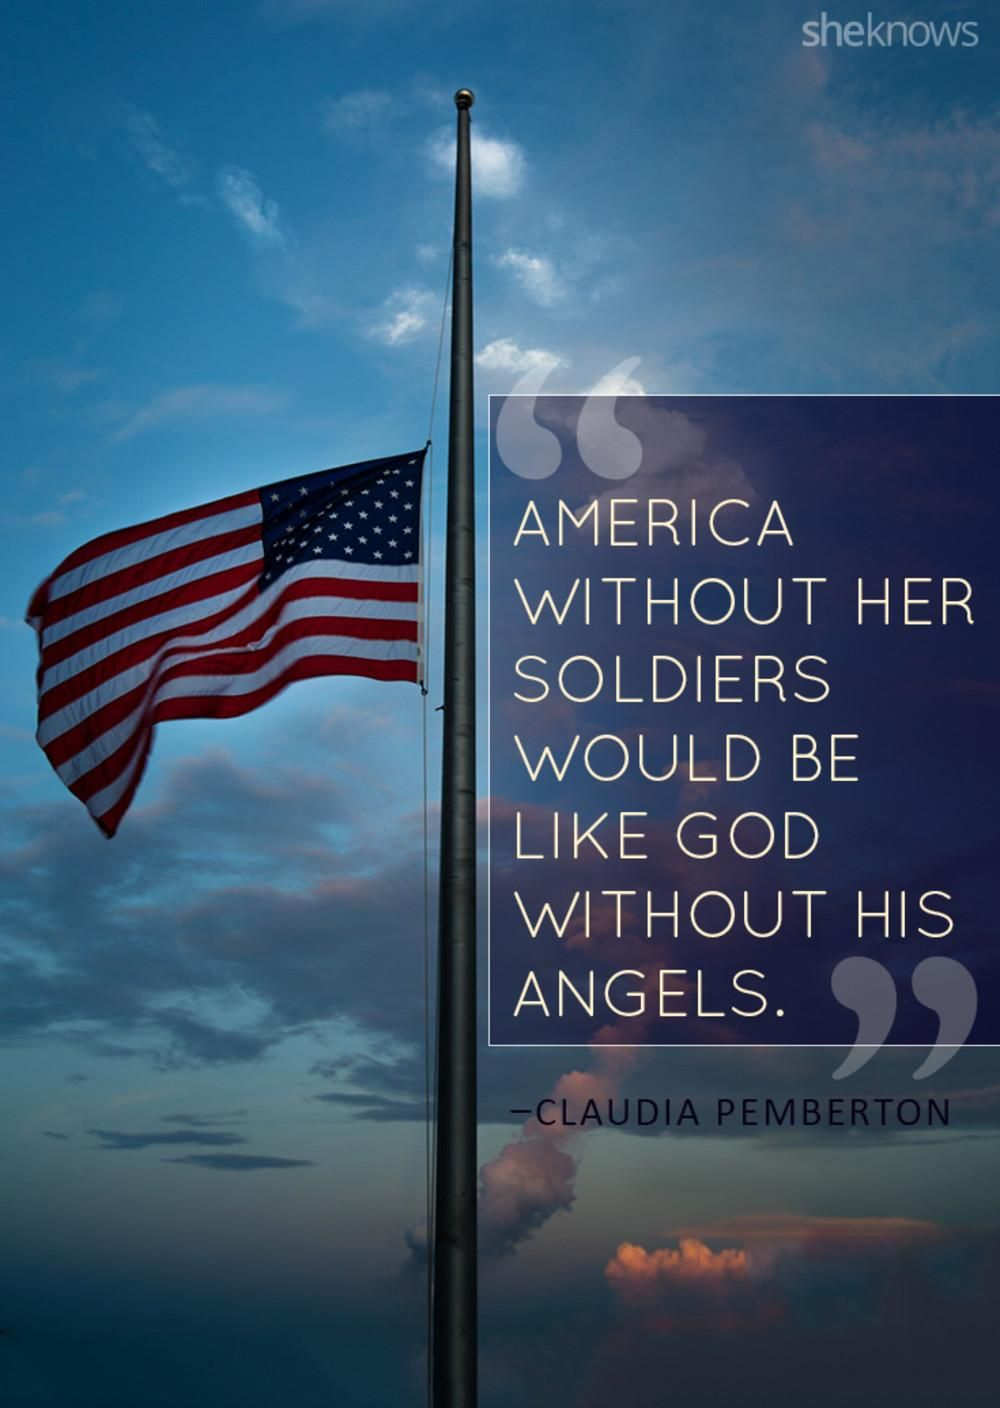 Click for more patriotic quotes for the red, white and